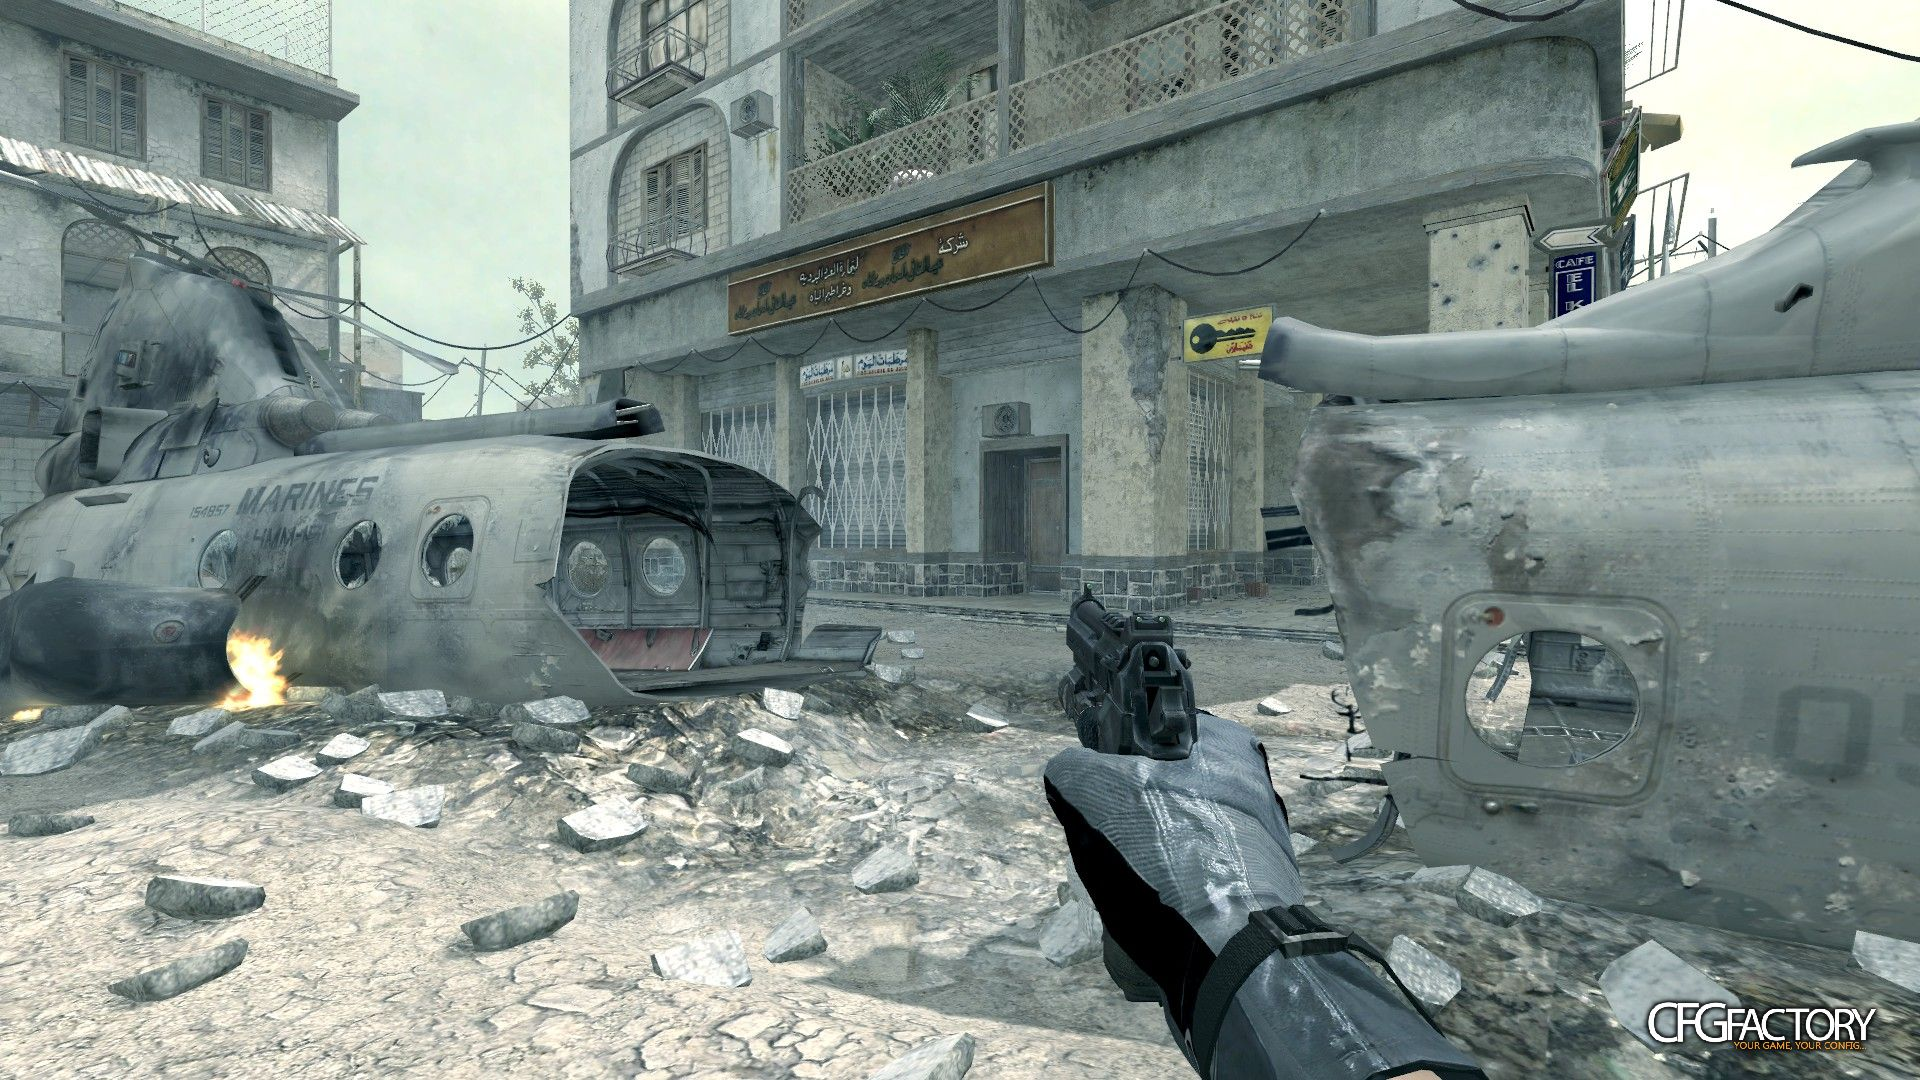 cod4, custom models, ghosts m9a1, convictiondr